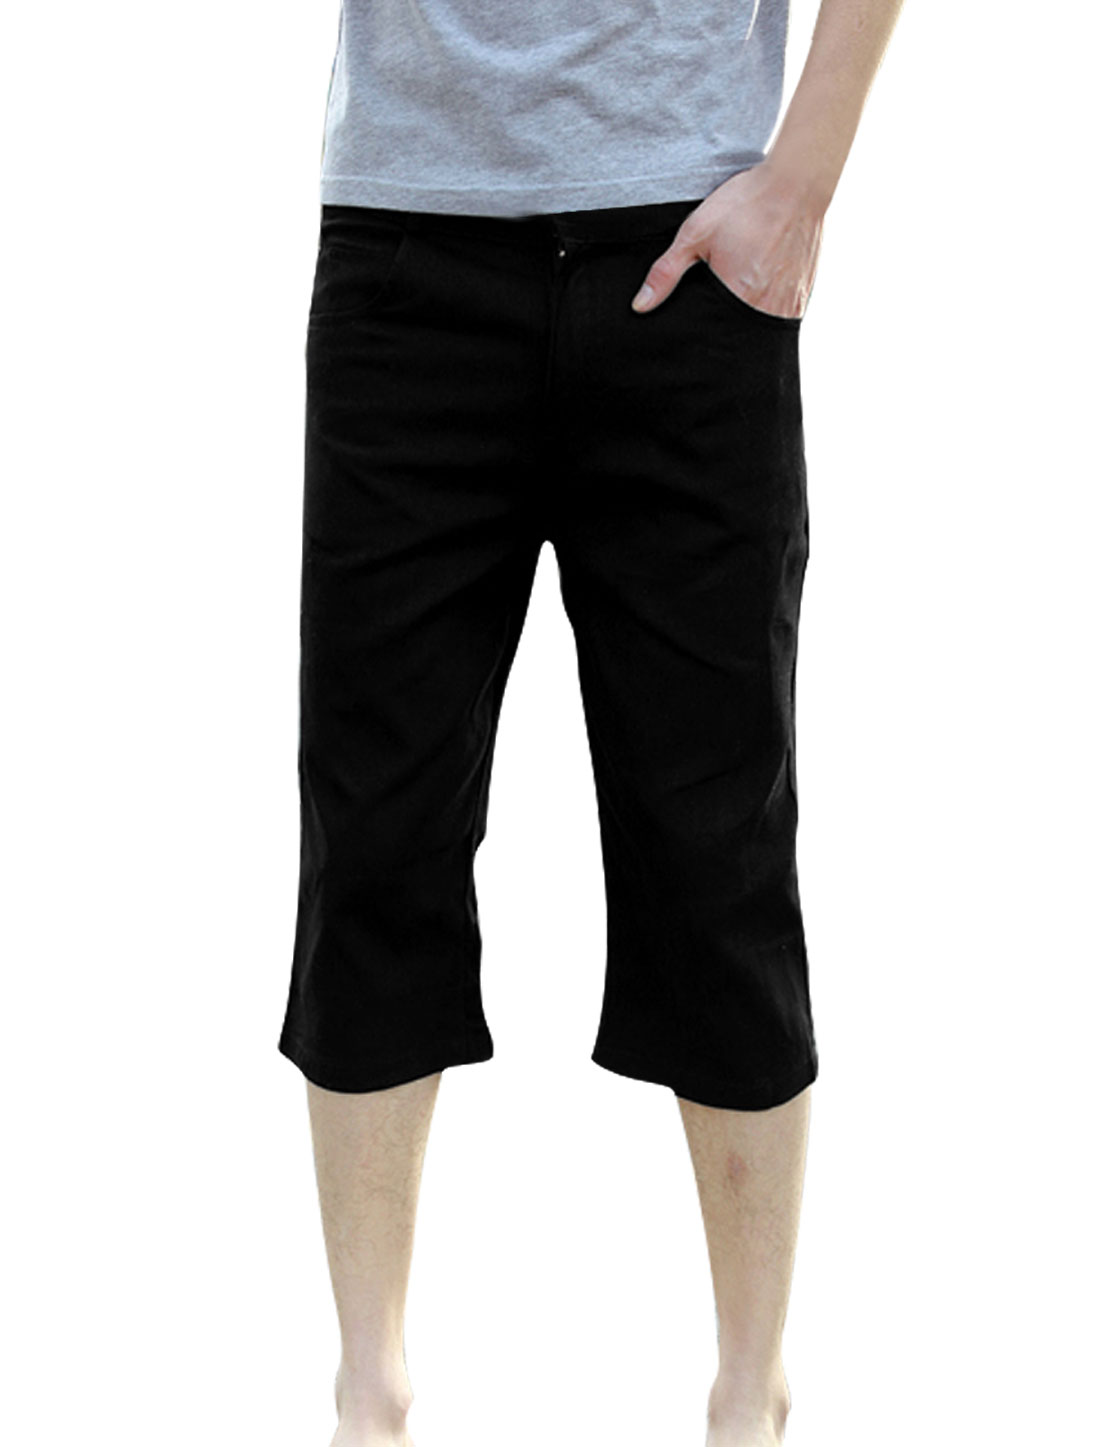 Men Stylish Zip Fly Closure Waistband Loop Slim Fit Capris Black W32